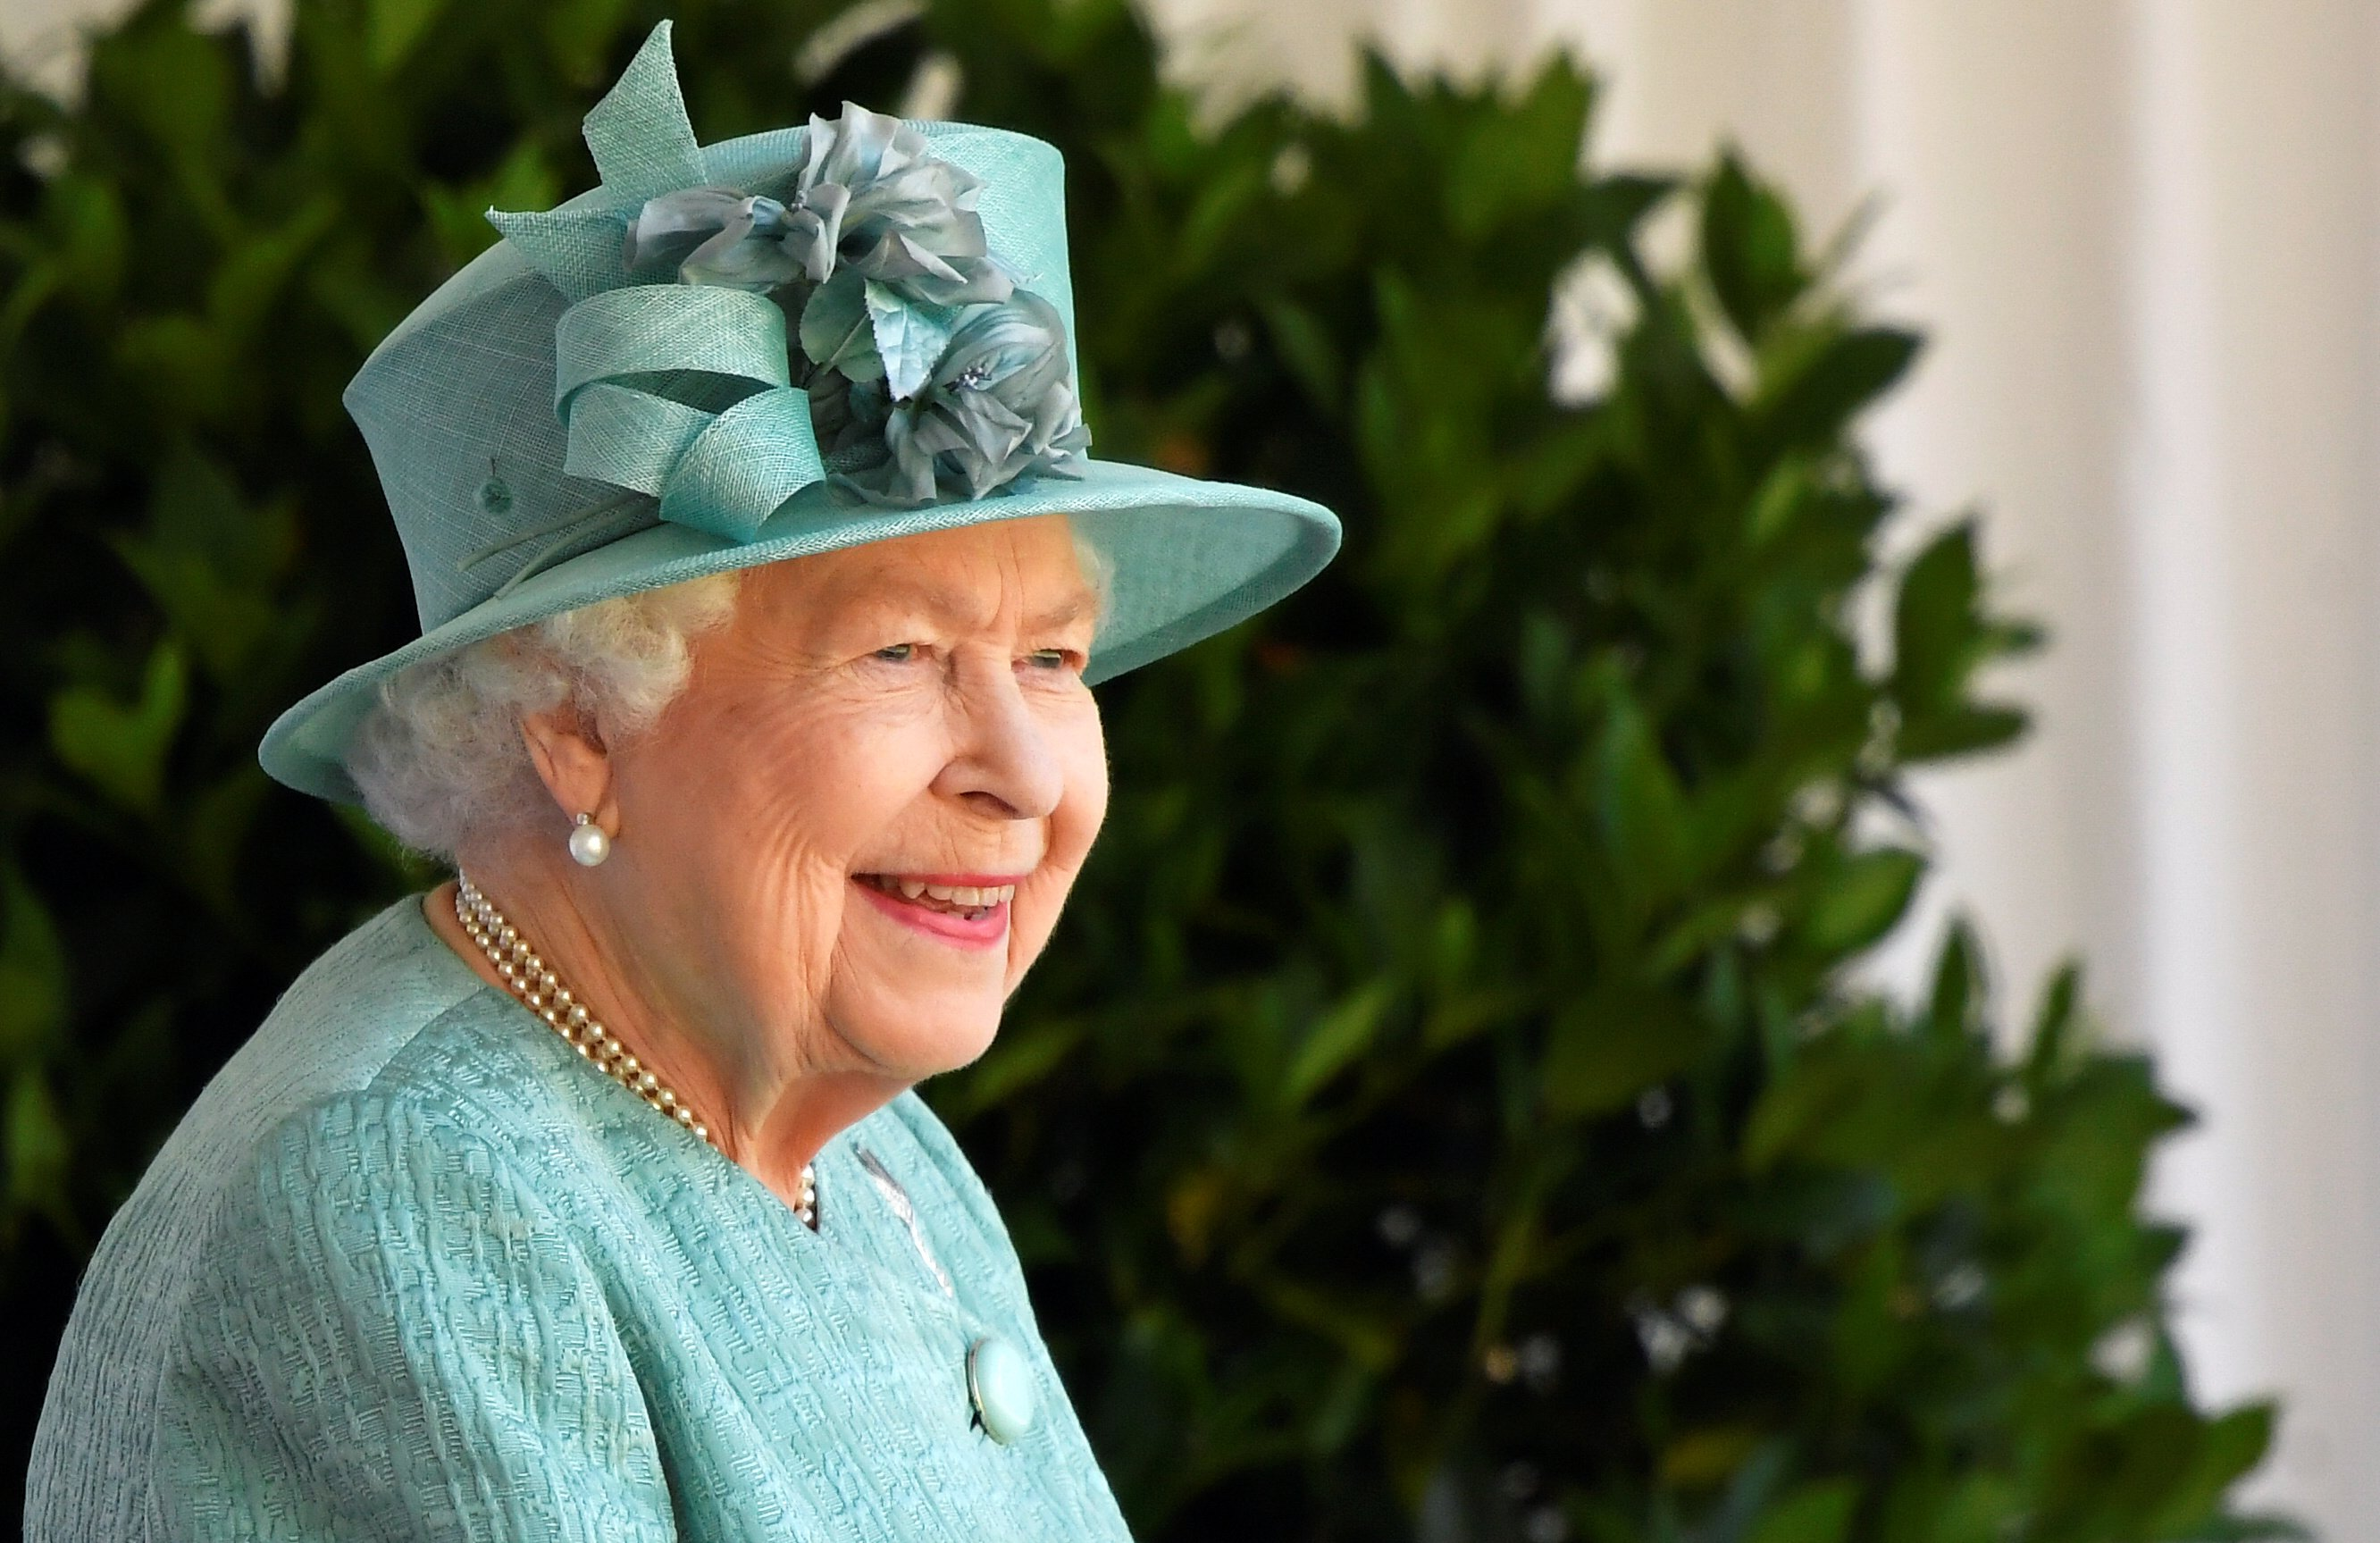 Queen Elizabeth II attends a ceremony to mark her official birthday at Windsor Castle on June 13, 2020, in Windsor, England. | Source: Getty Images.